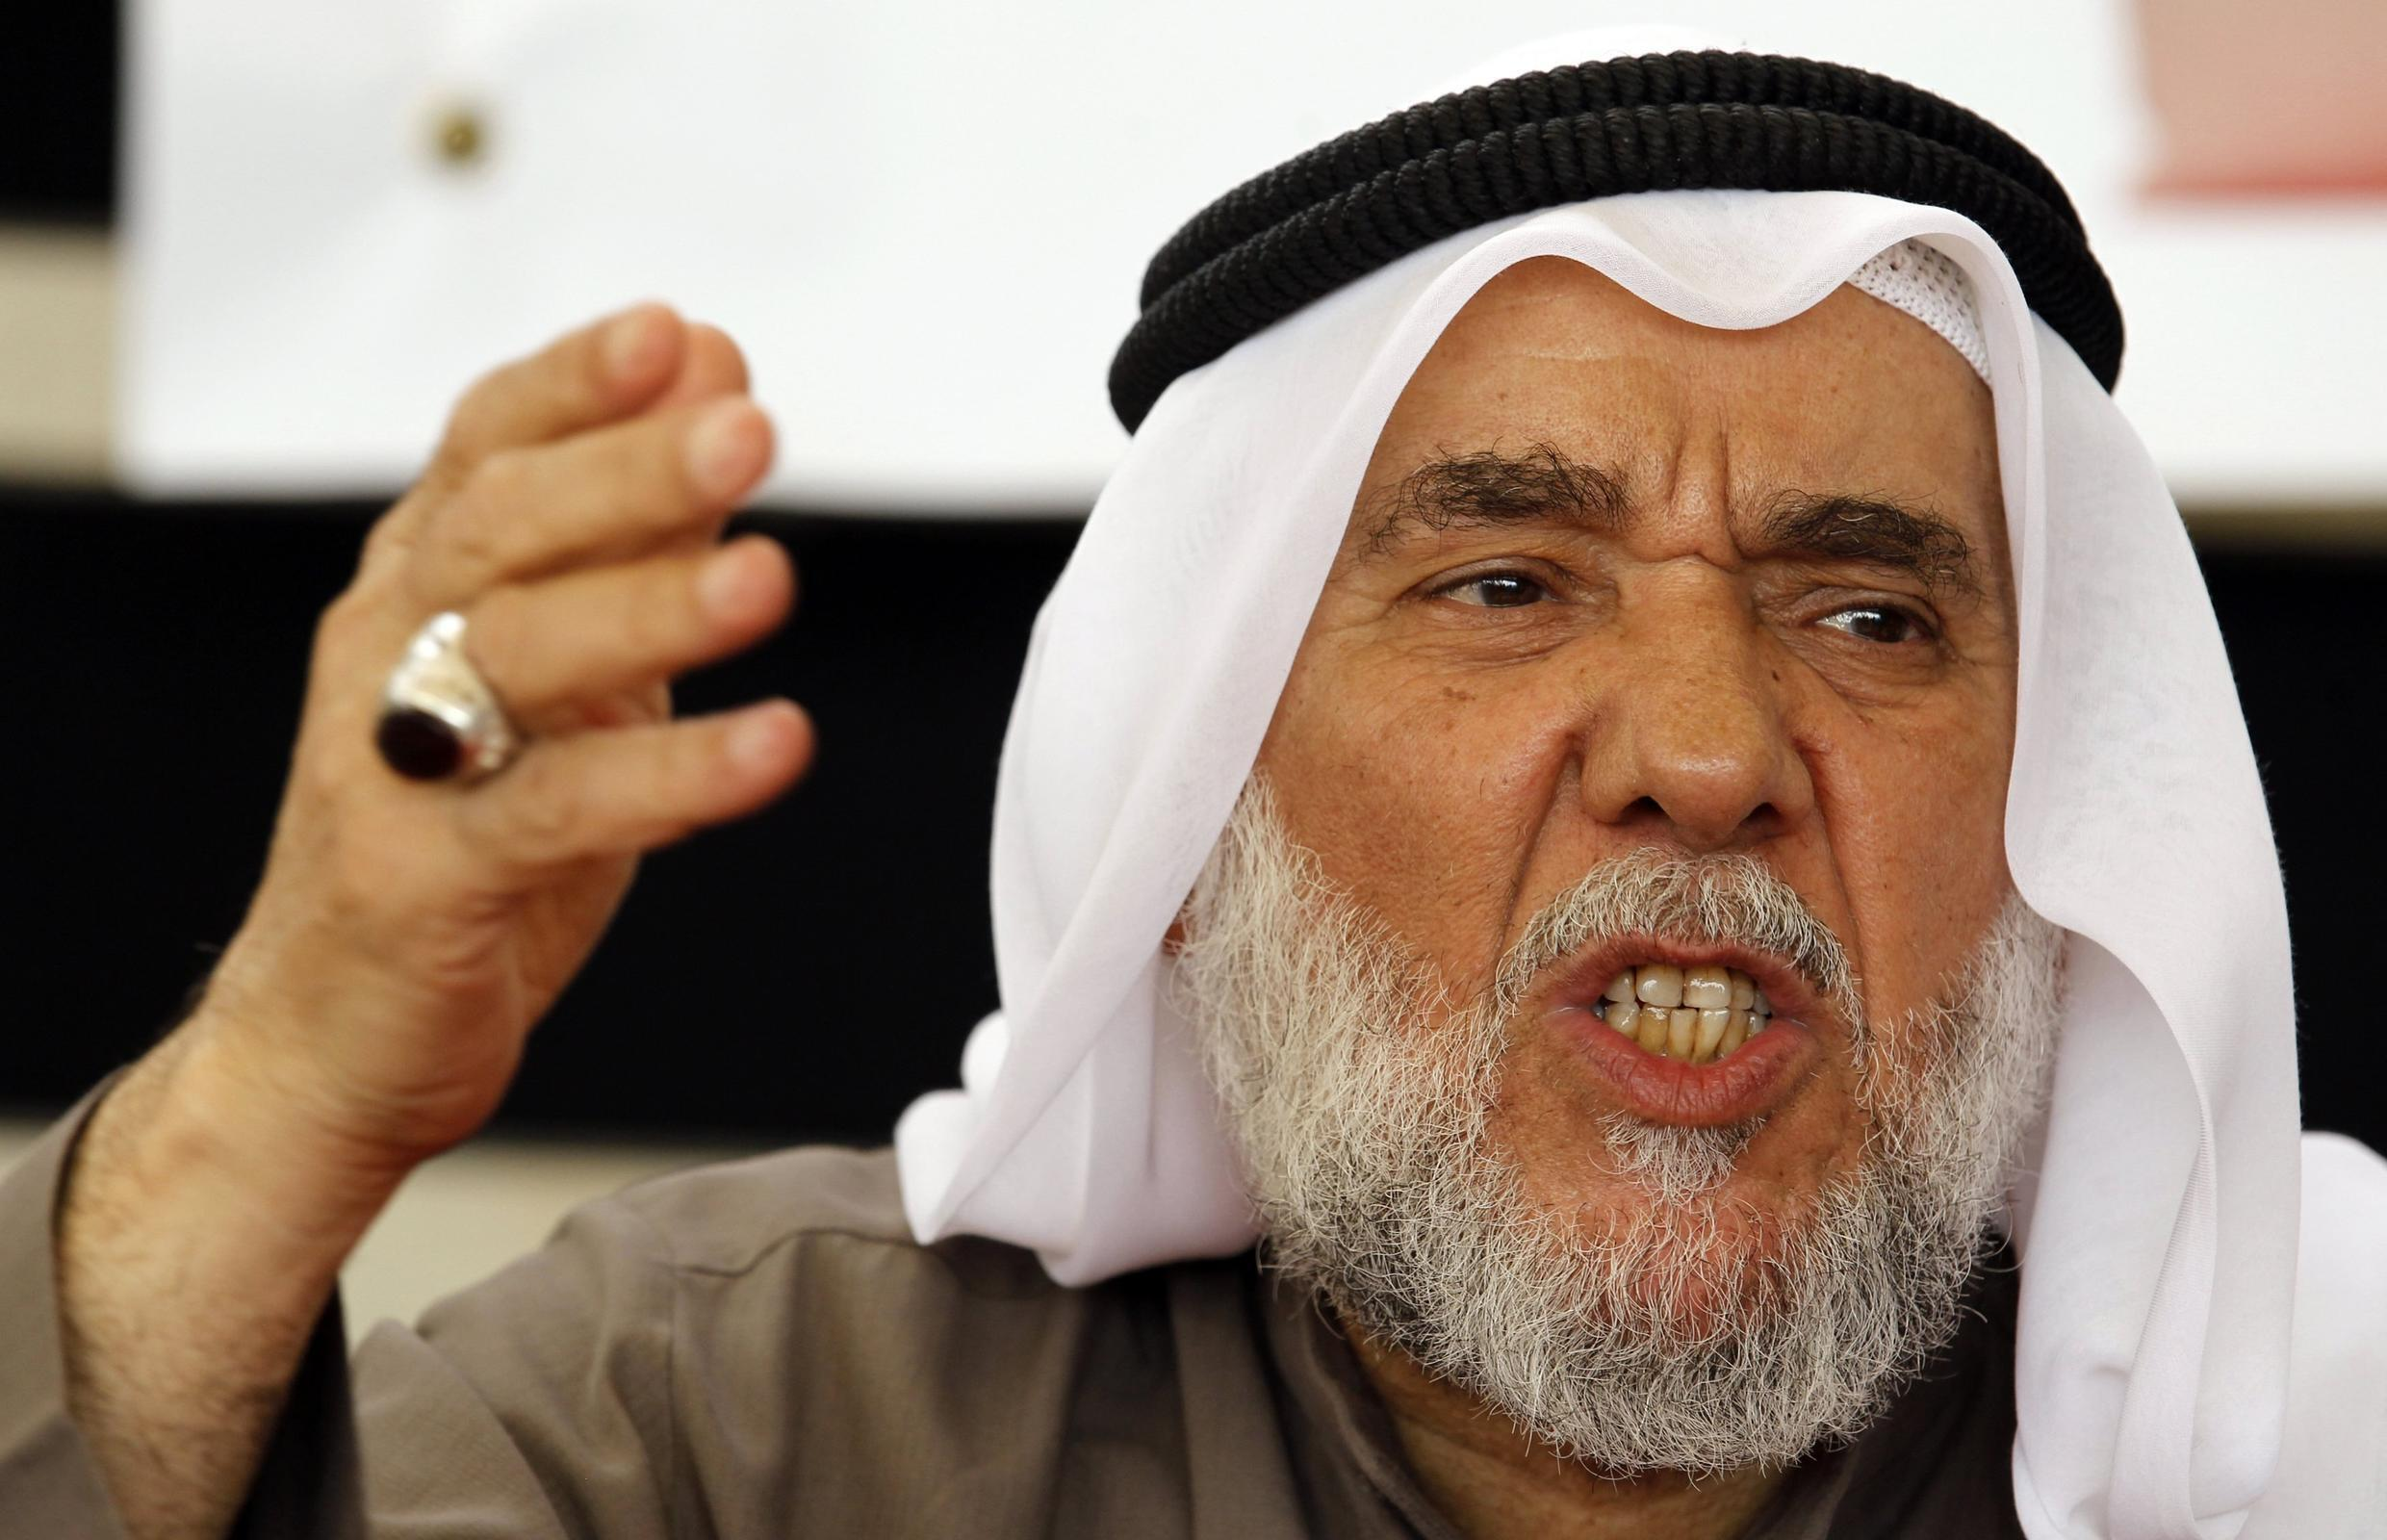 Hassan Mushaimaa at a news conference held in Pearl Square in the Bahraini capital of Manama, 27 February, 2011